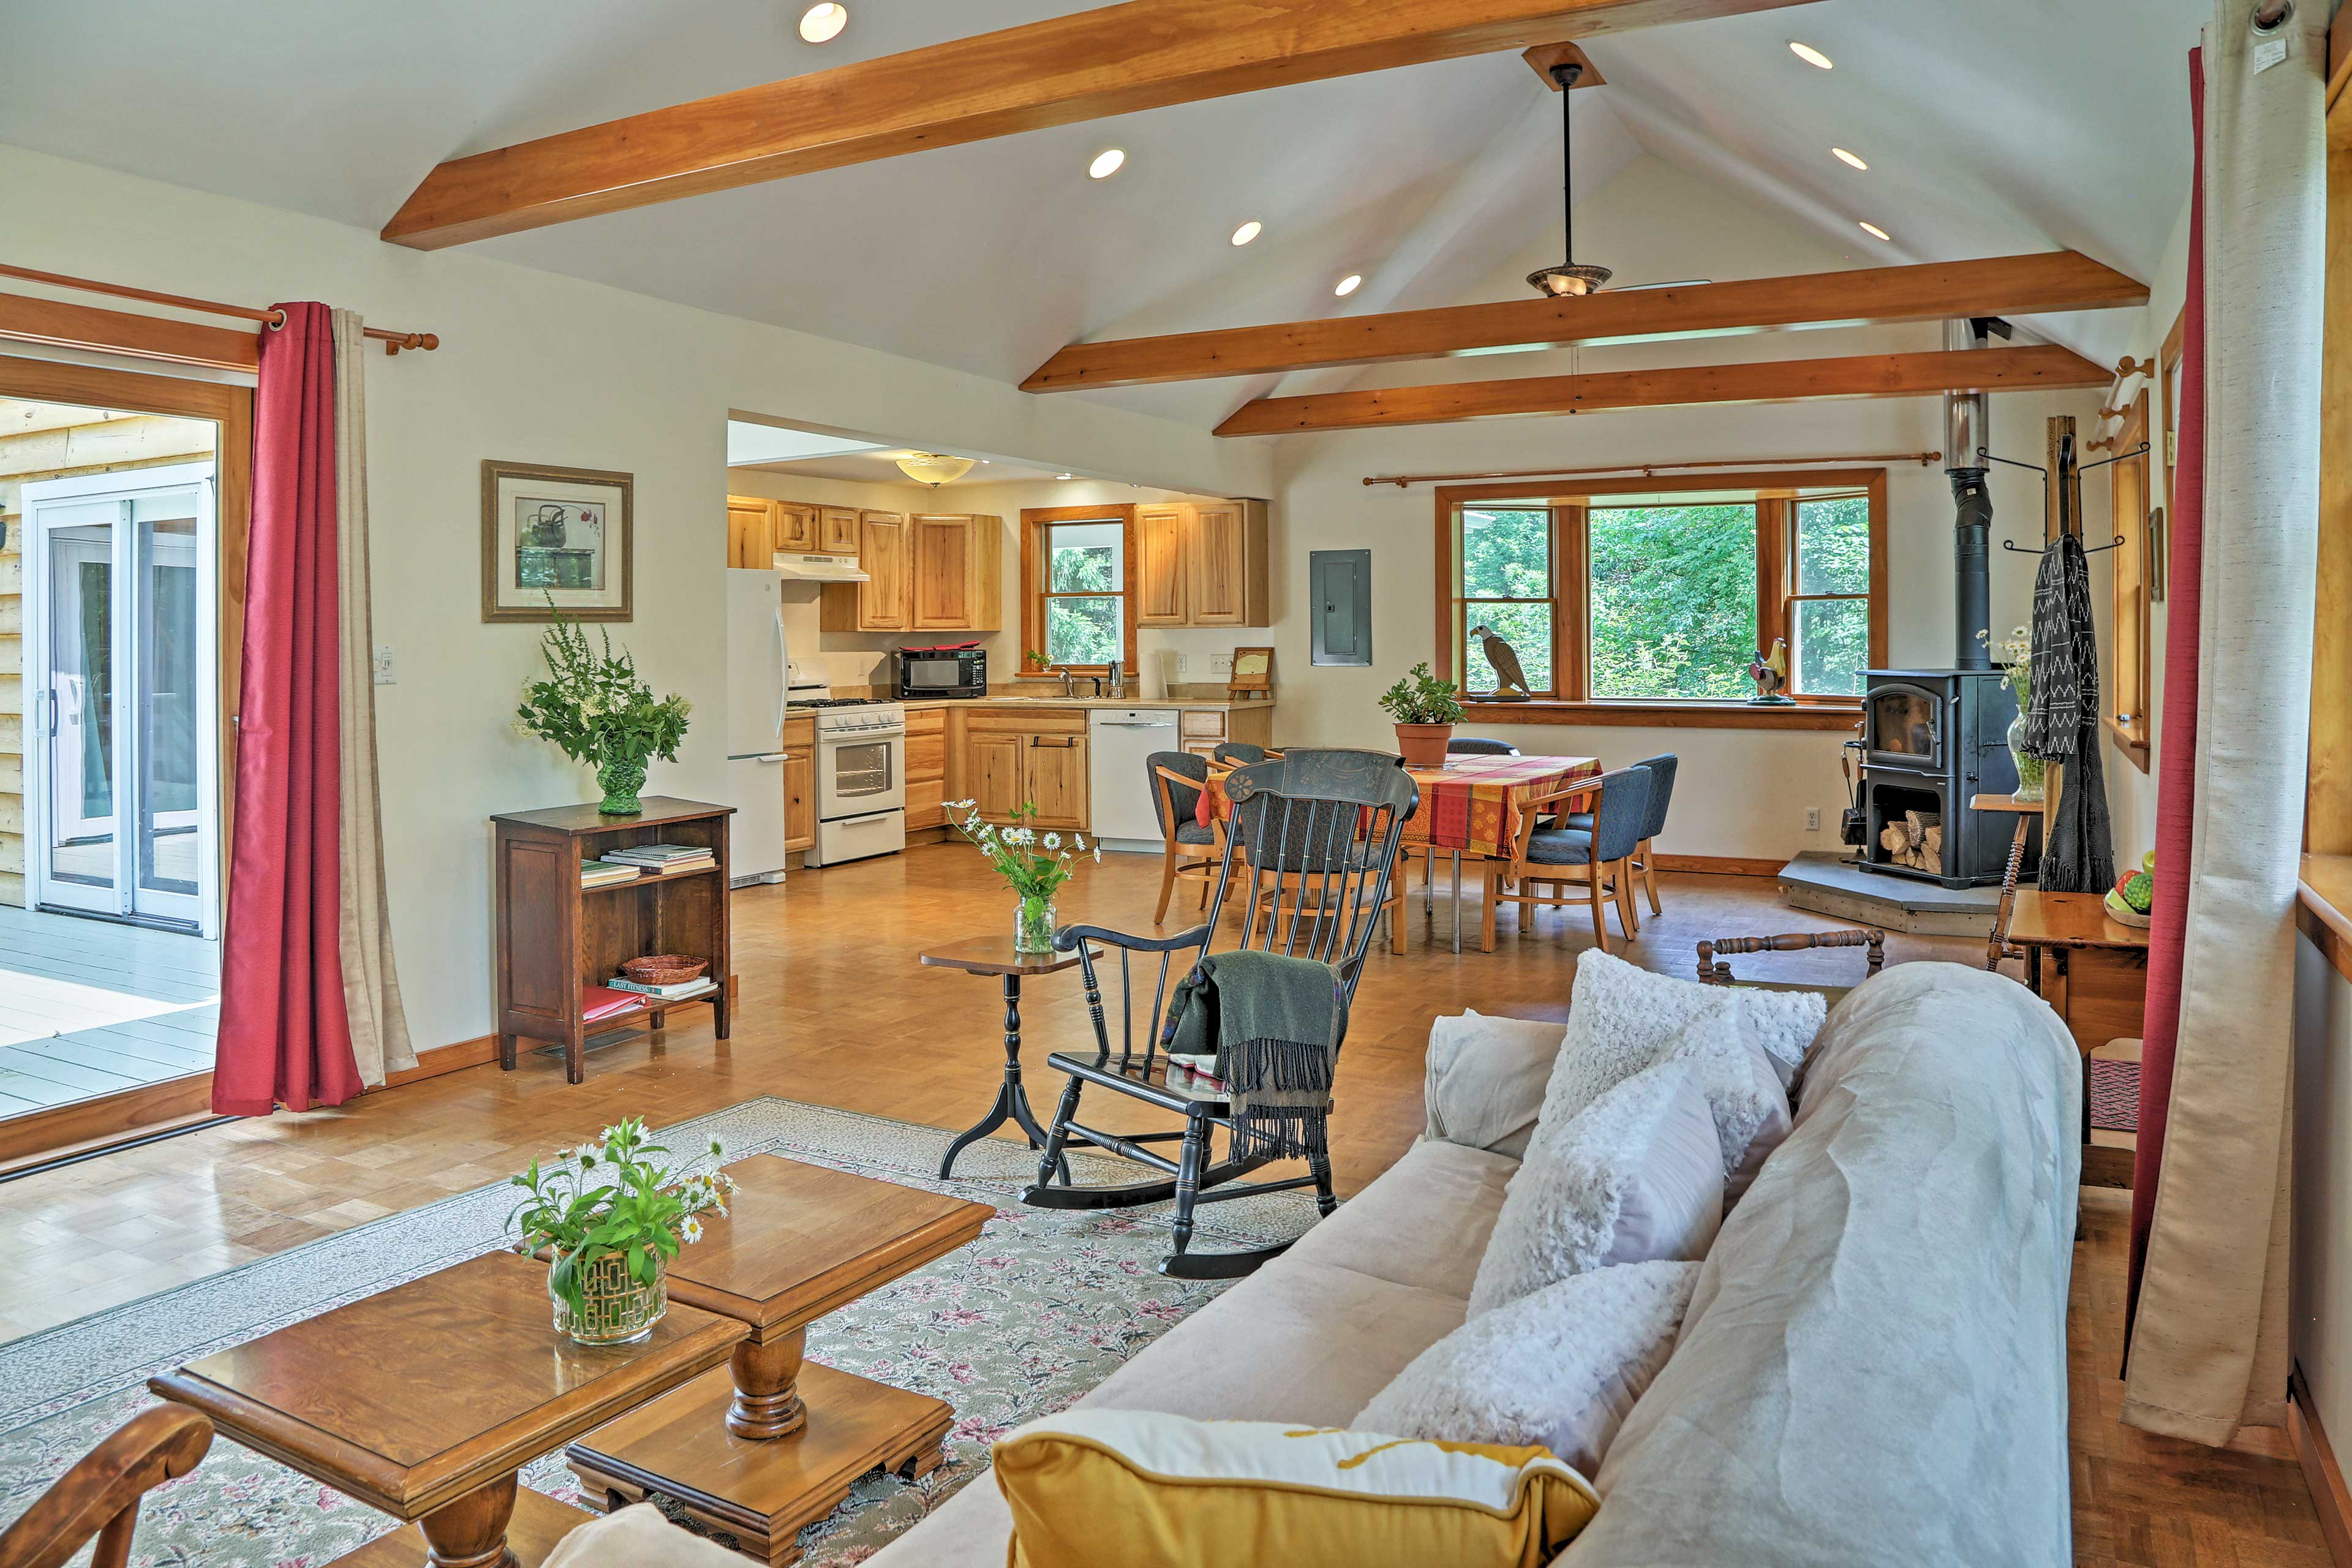 The well-appointed interior offers all the comforts of home.